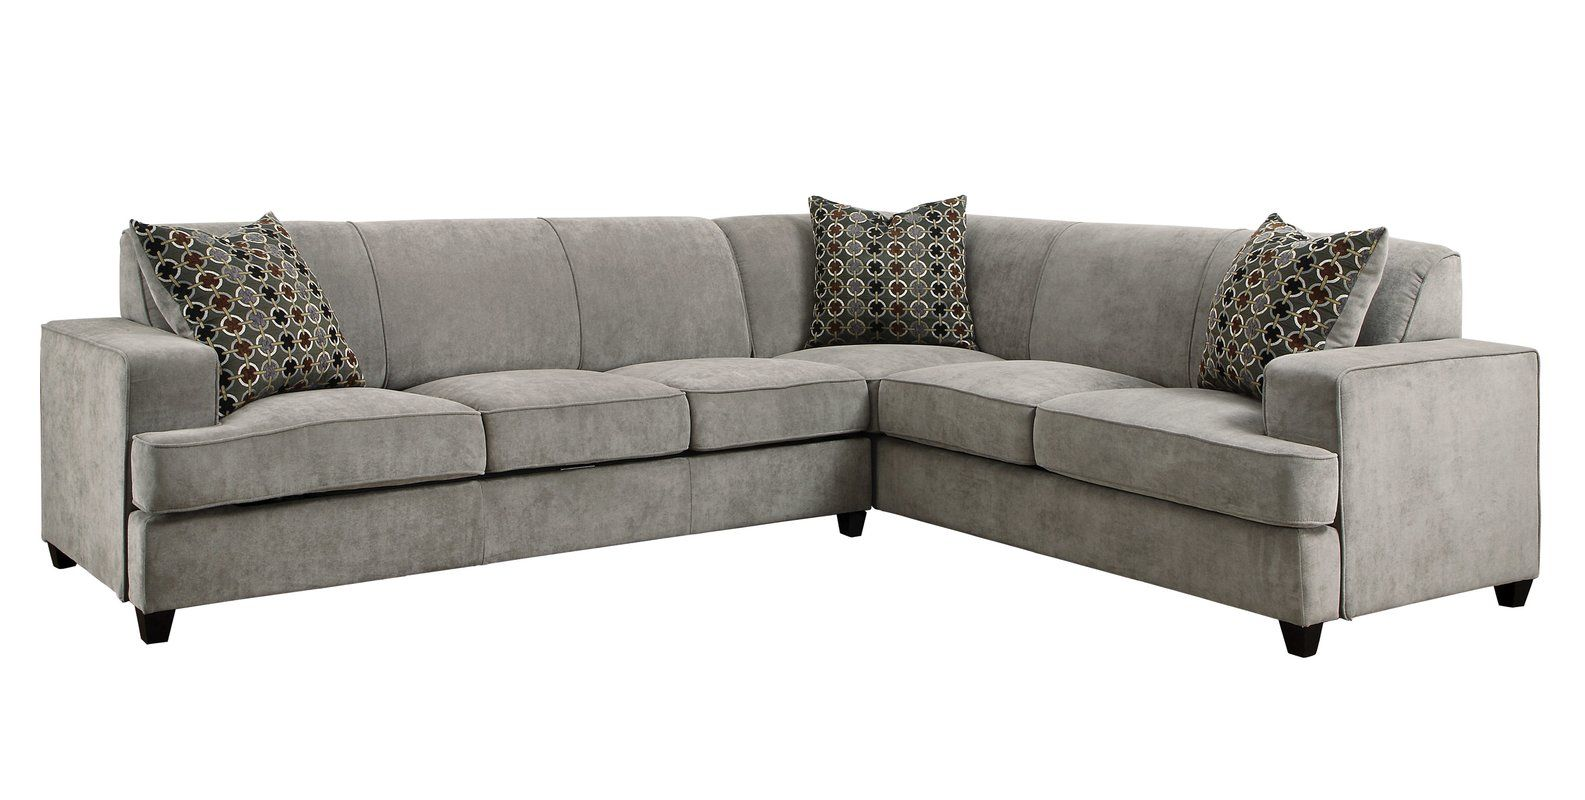 Caswell 114 Right Hand Facing Sleeper Sectional Sectional Sleeper Sofa Corner Sectional Sofa Grey Sectional Sofa